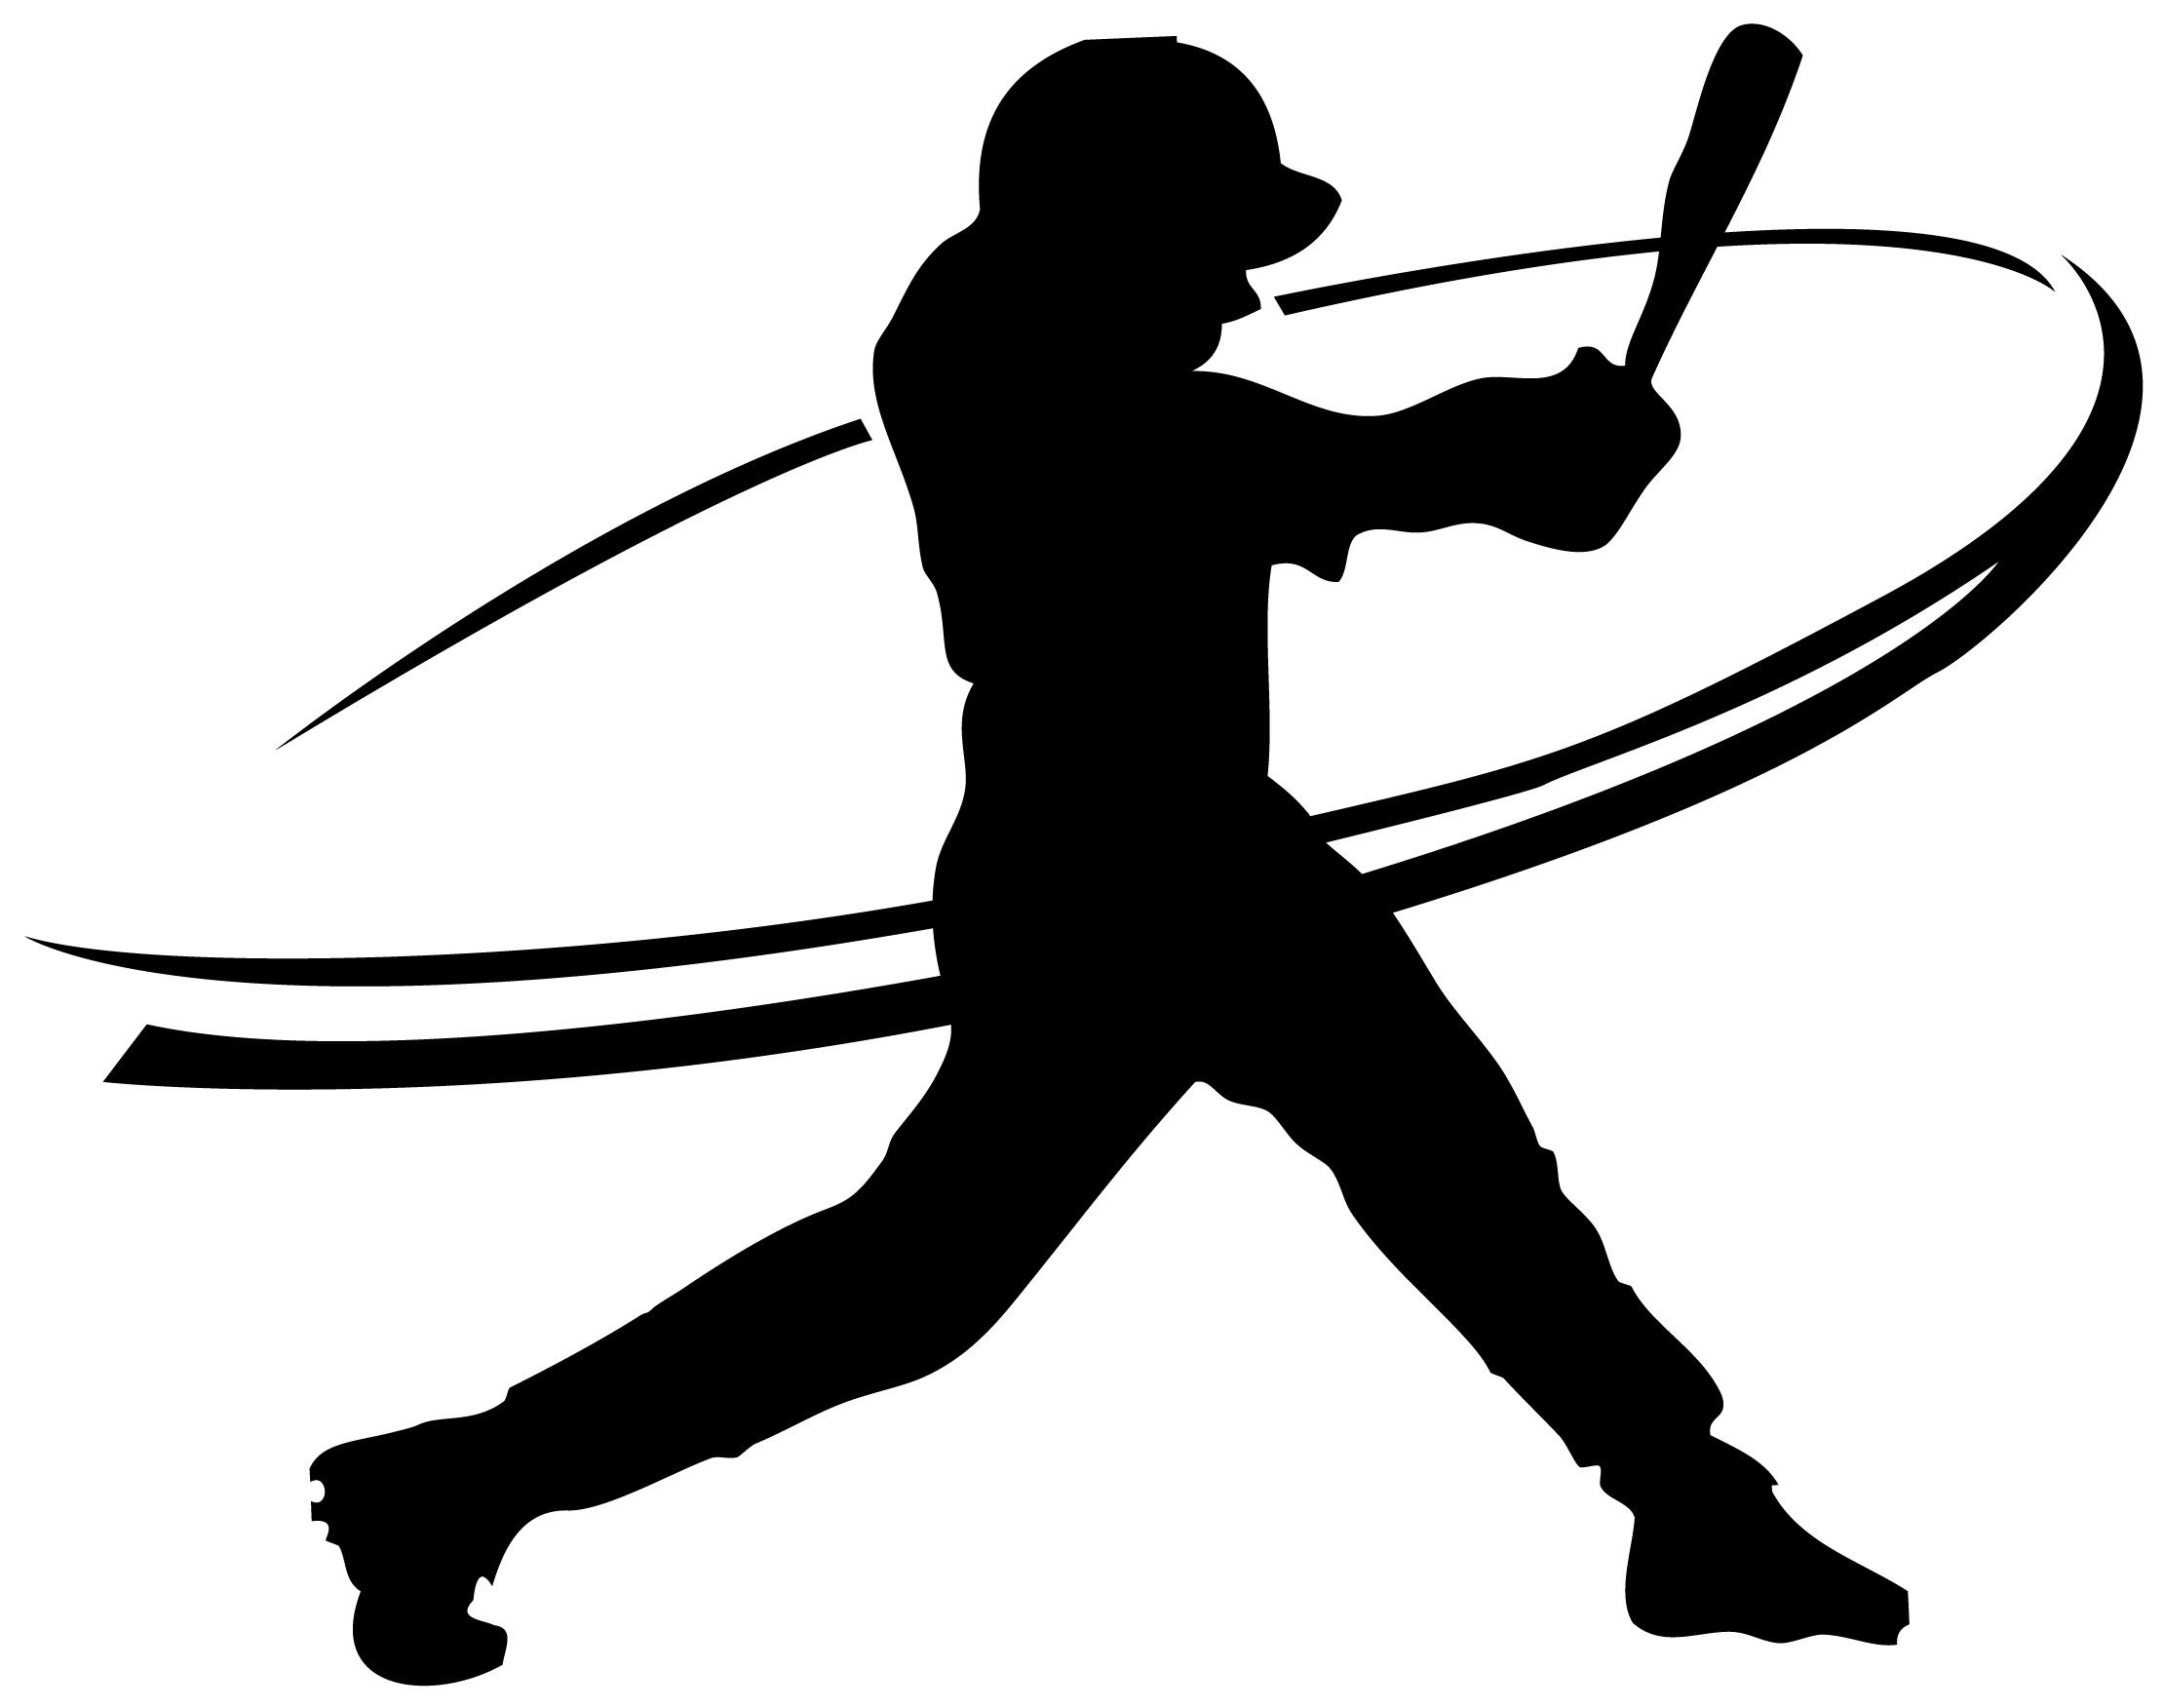 Softball Free Clipart | Free Download Best Softball Free Clipart On - Free Printable Softball Pictures